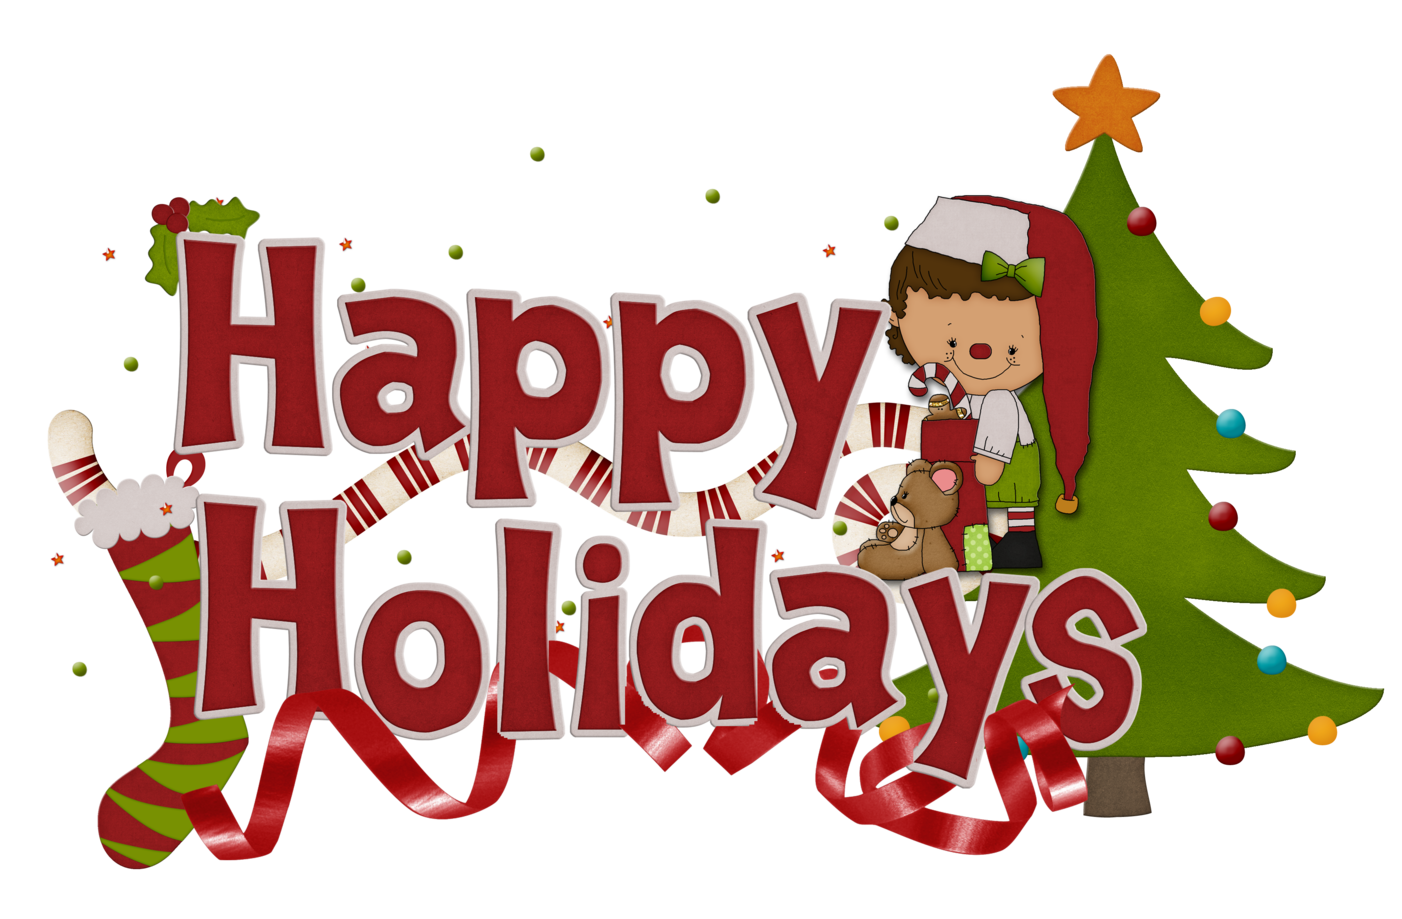 Holiday clipart happy hour #5.